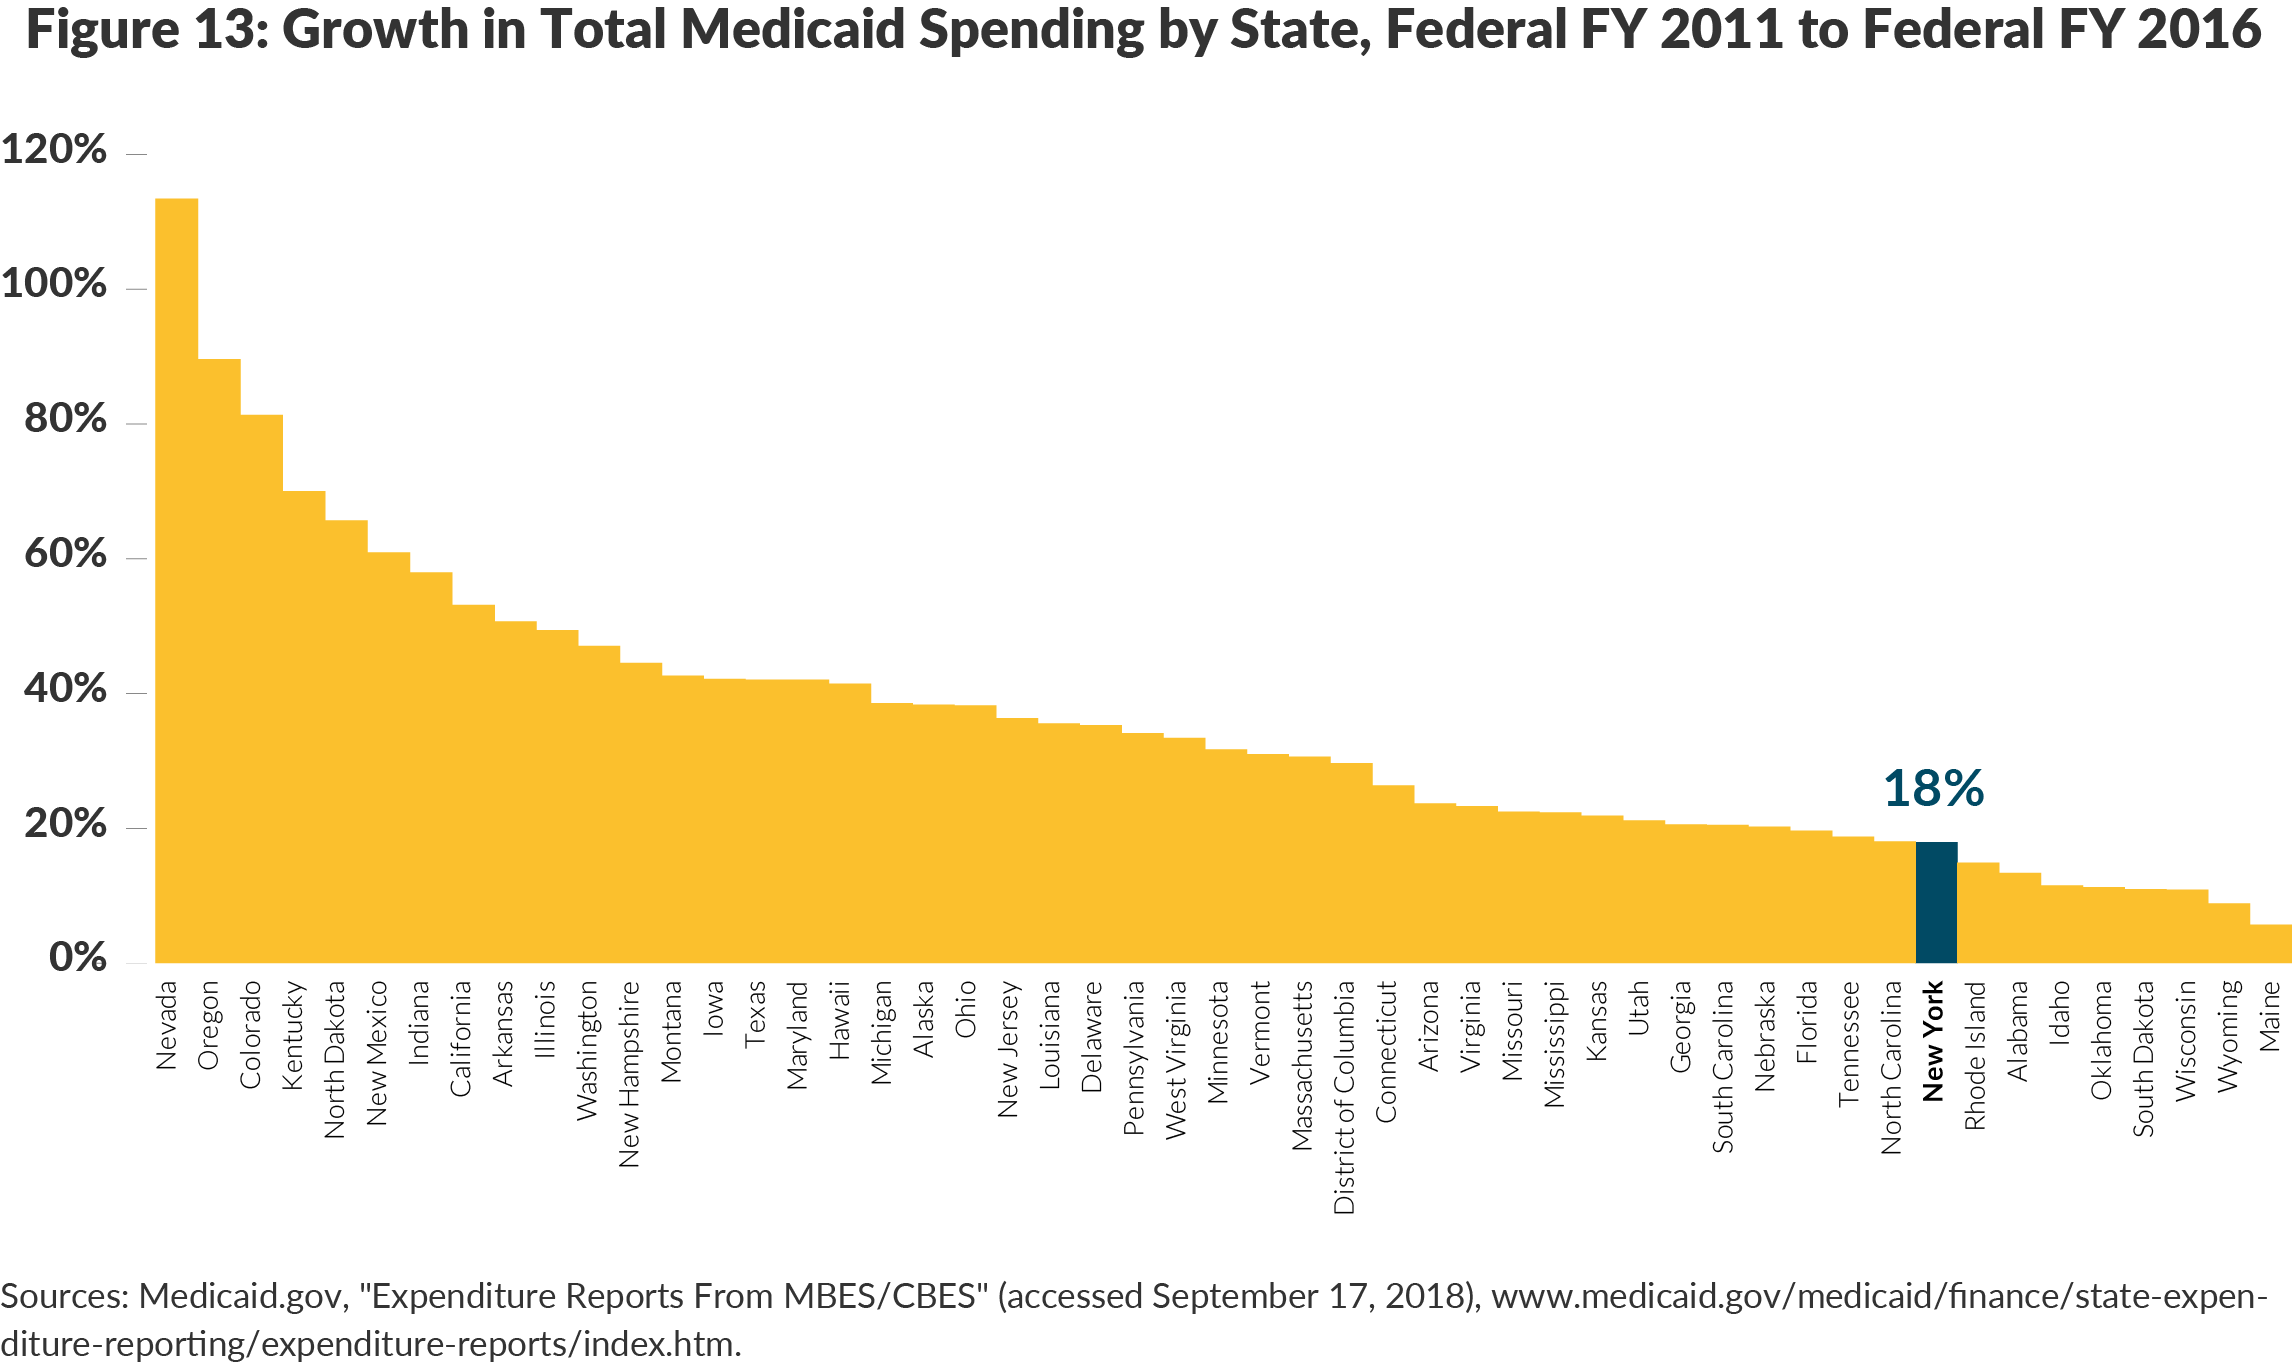 Figure 13: Growth in Total Medicaid Spending by State, Federal FY 2011 to Federal FY 2016